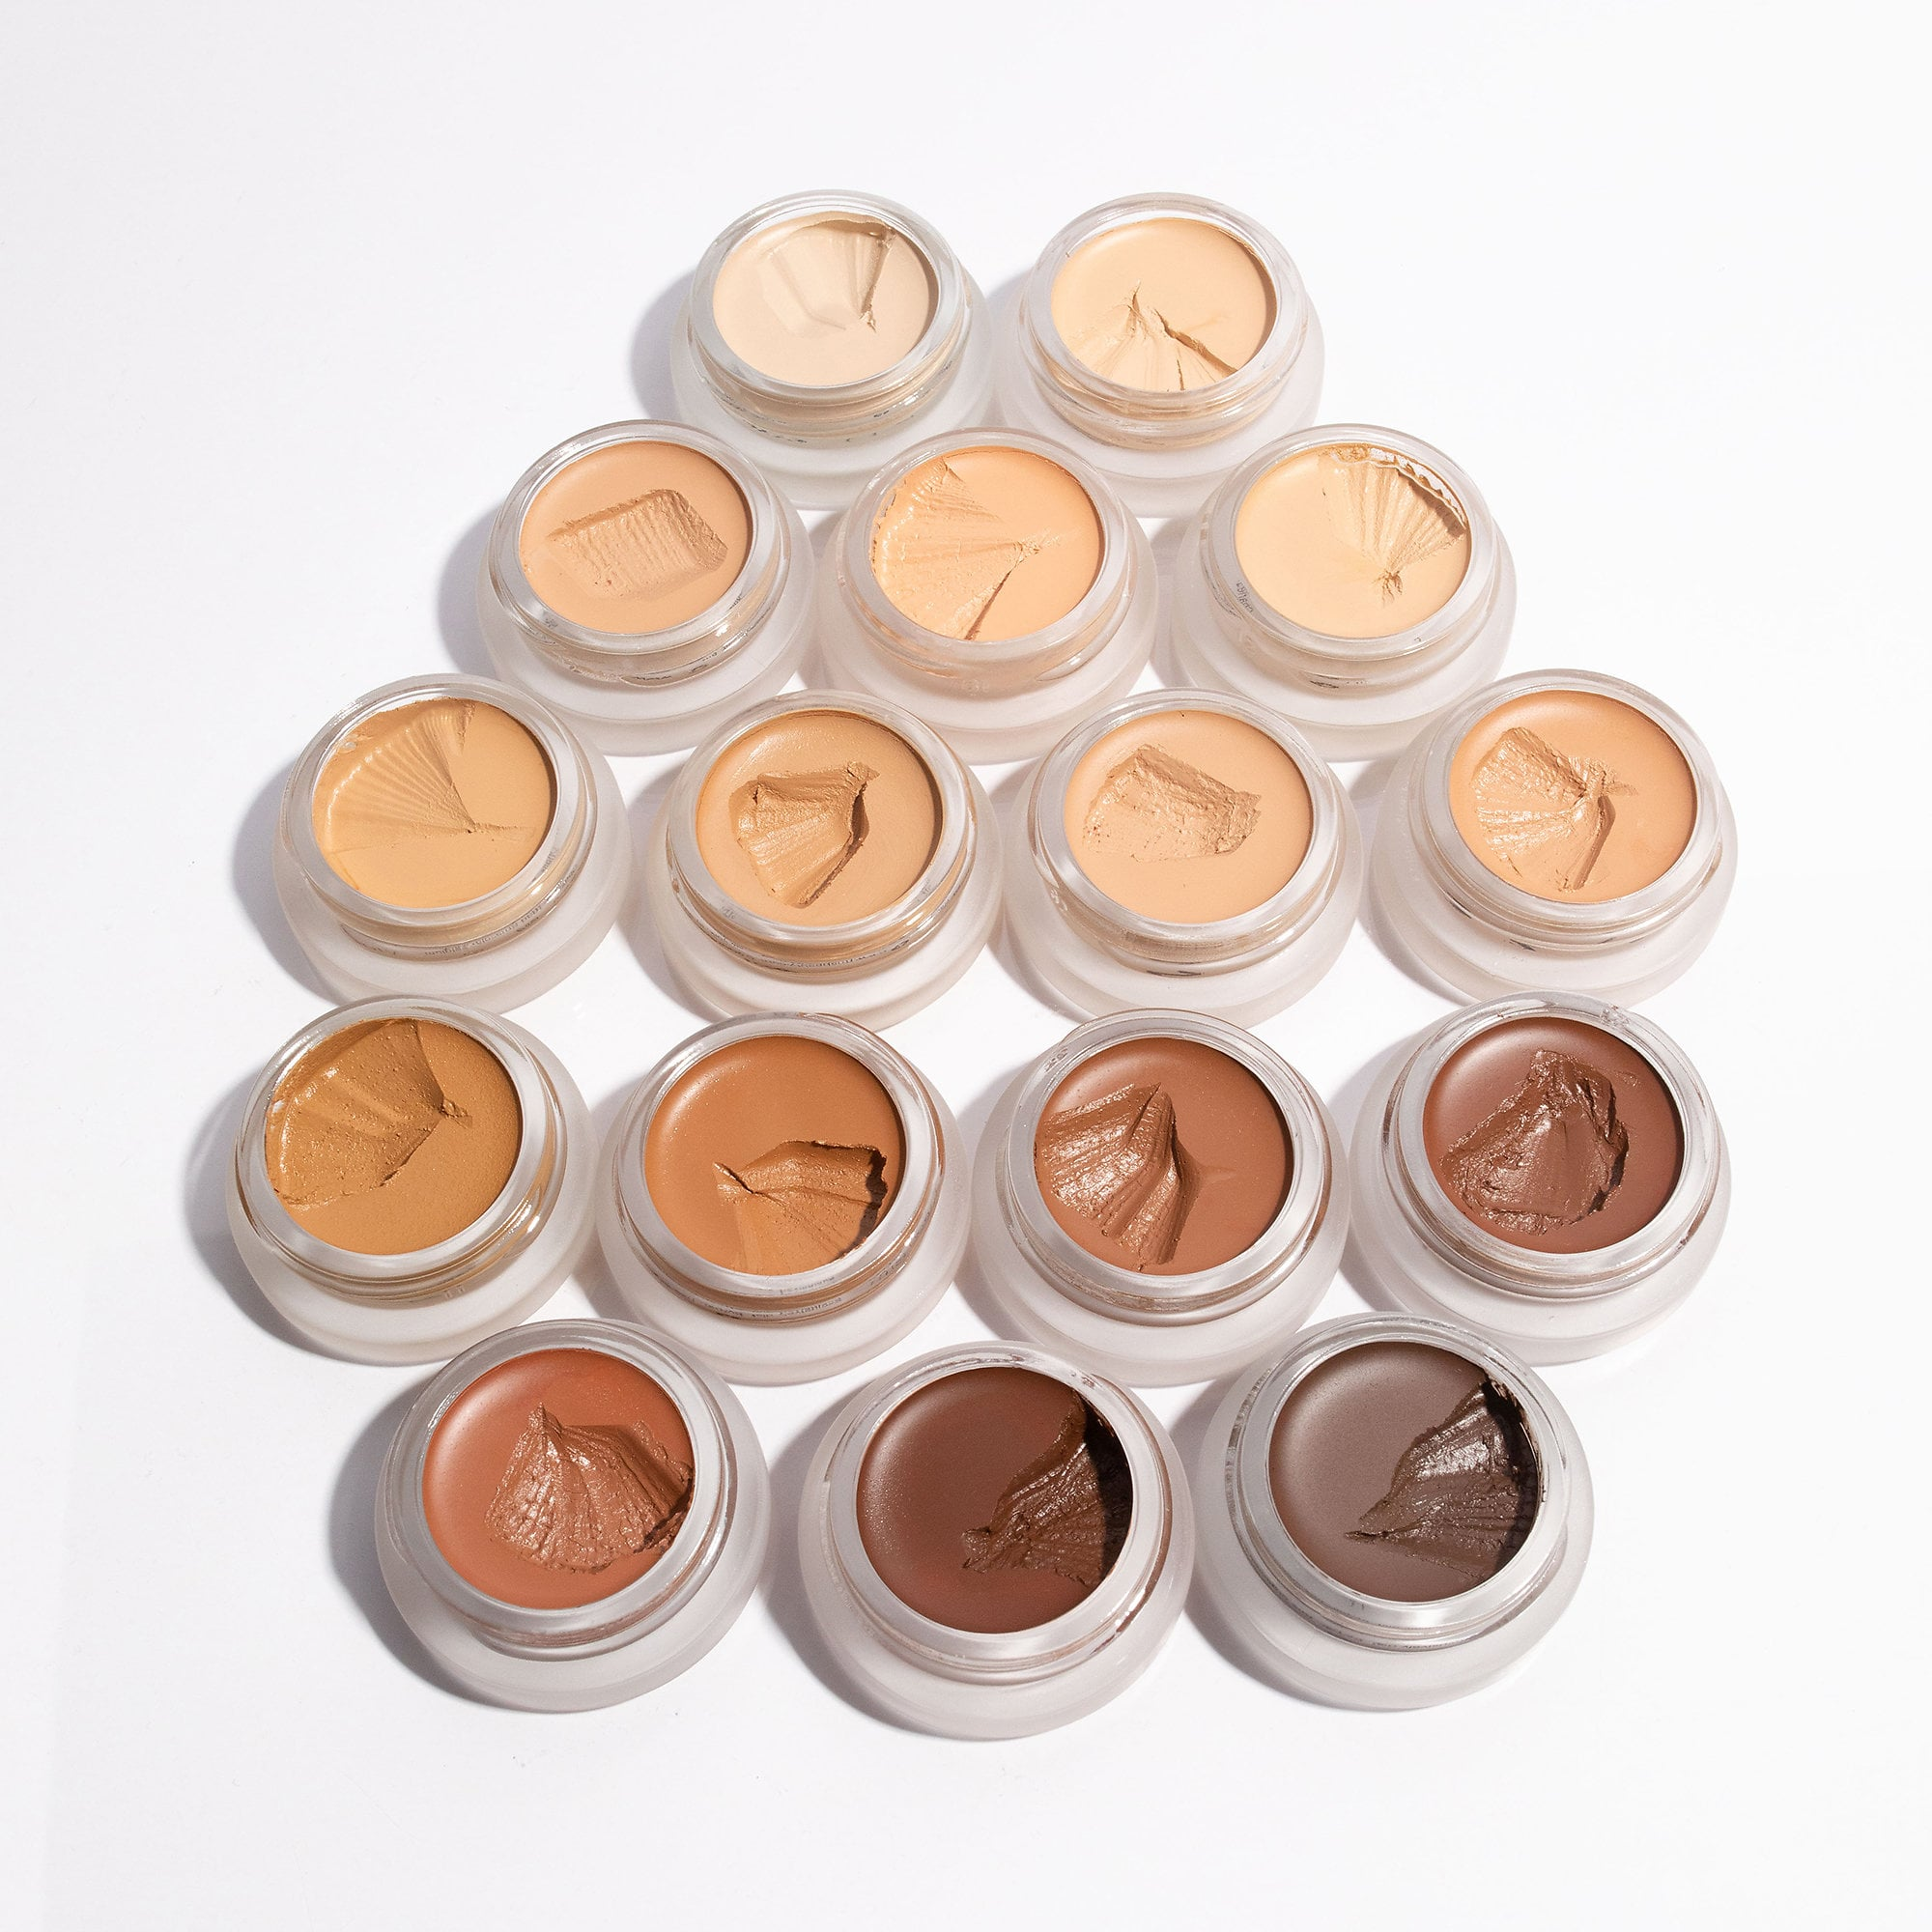 RMS Beauty Un Cover-Up Concealer/Foundation | 30 Sephora Products to Help  Even Non-Beauty-Related Resolutions Stay on Track | POPSUGAR Beauty Photo 8